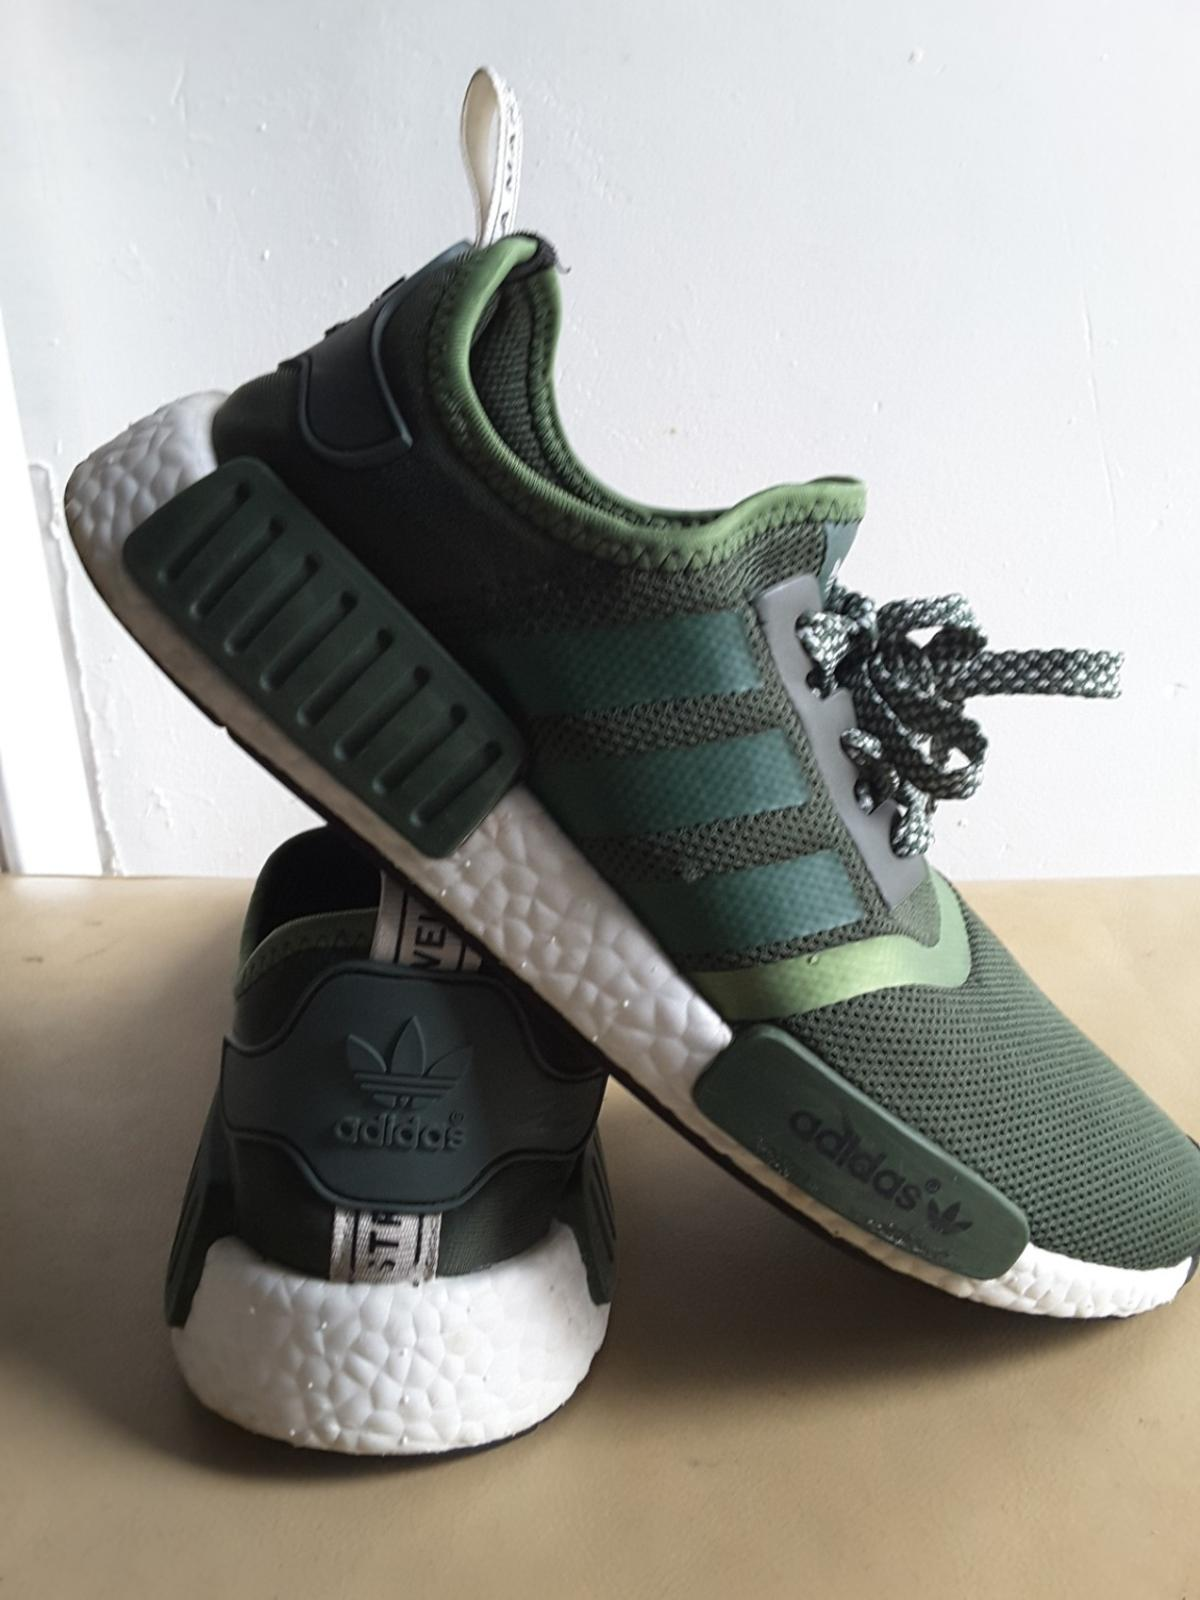 sale retailer 5e0a7 9c093 MENS ADIDAS ORIGINALS NMD GREEN TRAINERS UK 9 in SW9 London ...